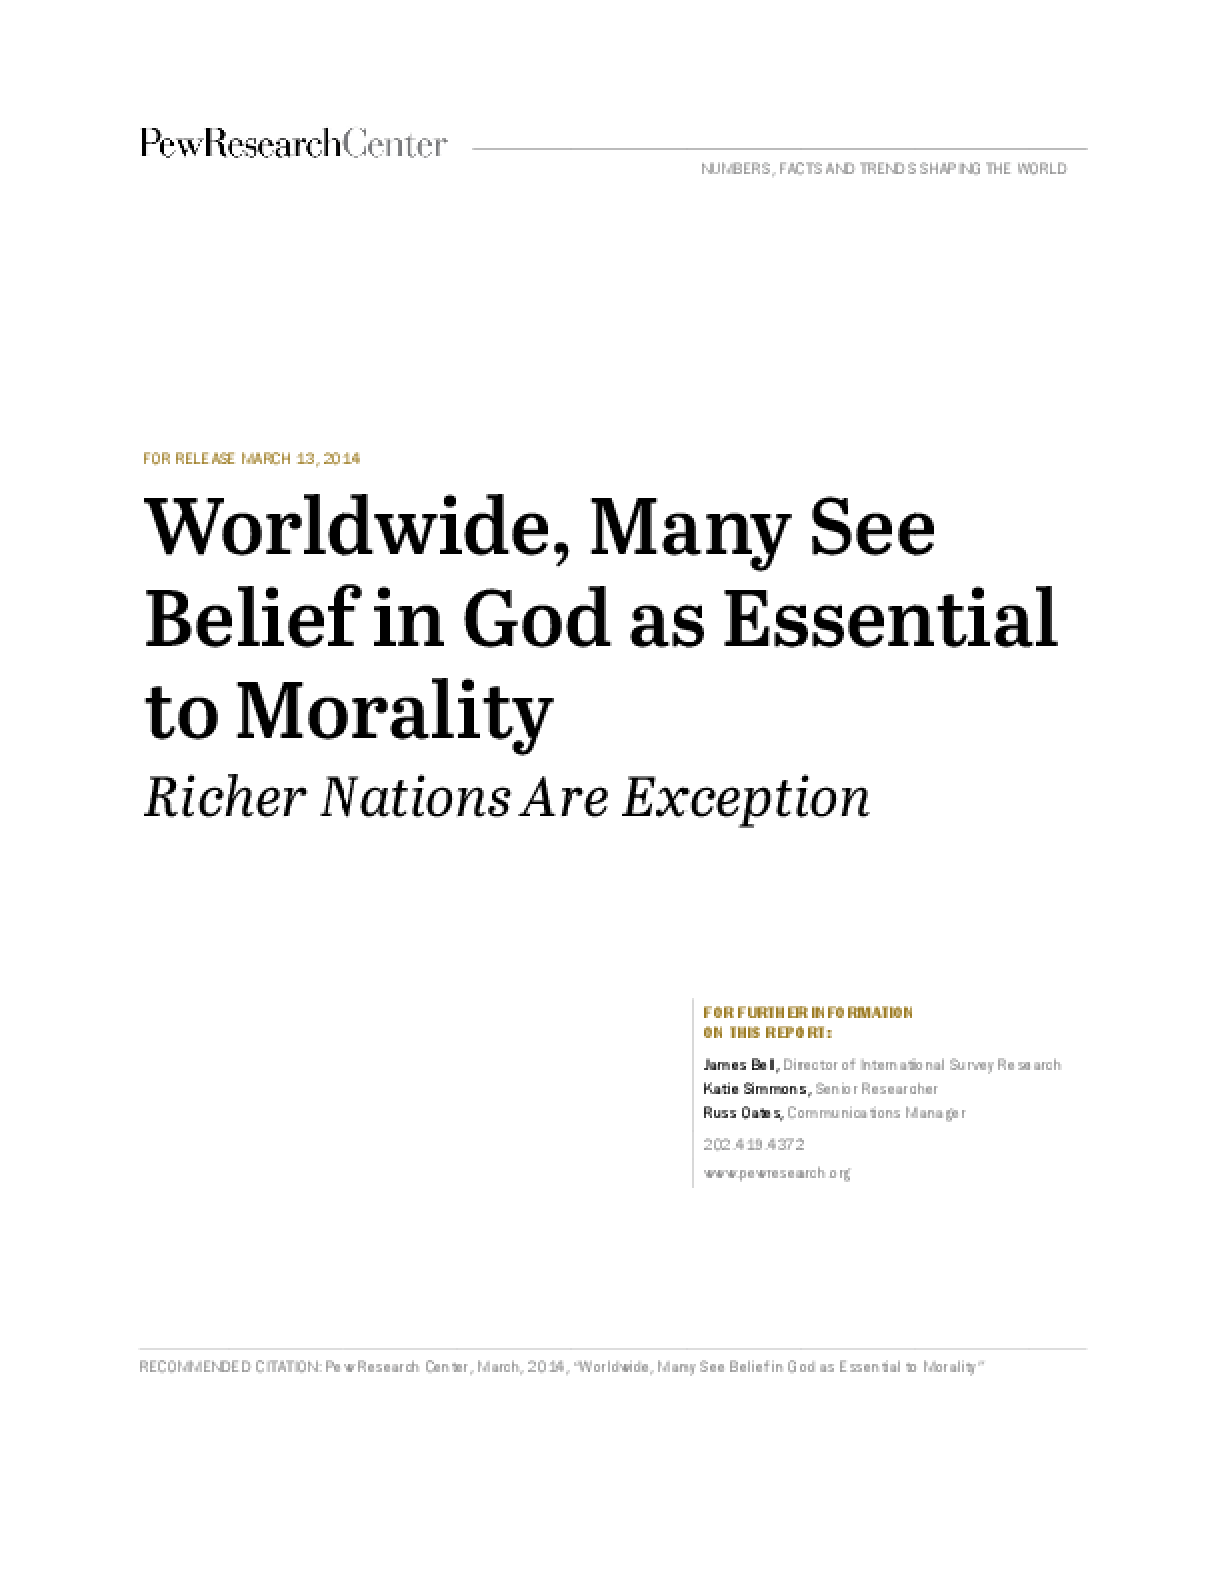 Worldwide, Many See Belief in God as Essential to Morality